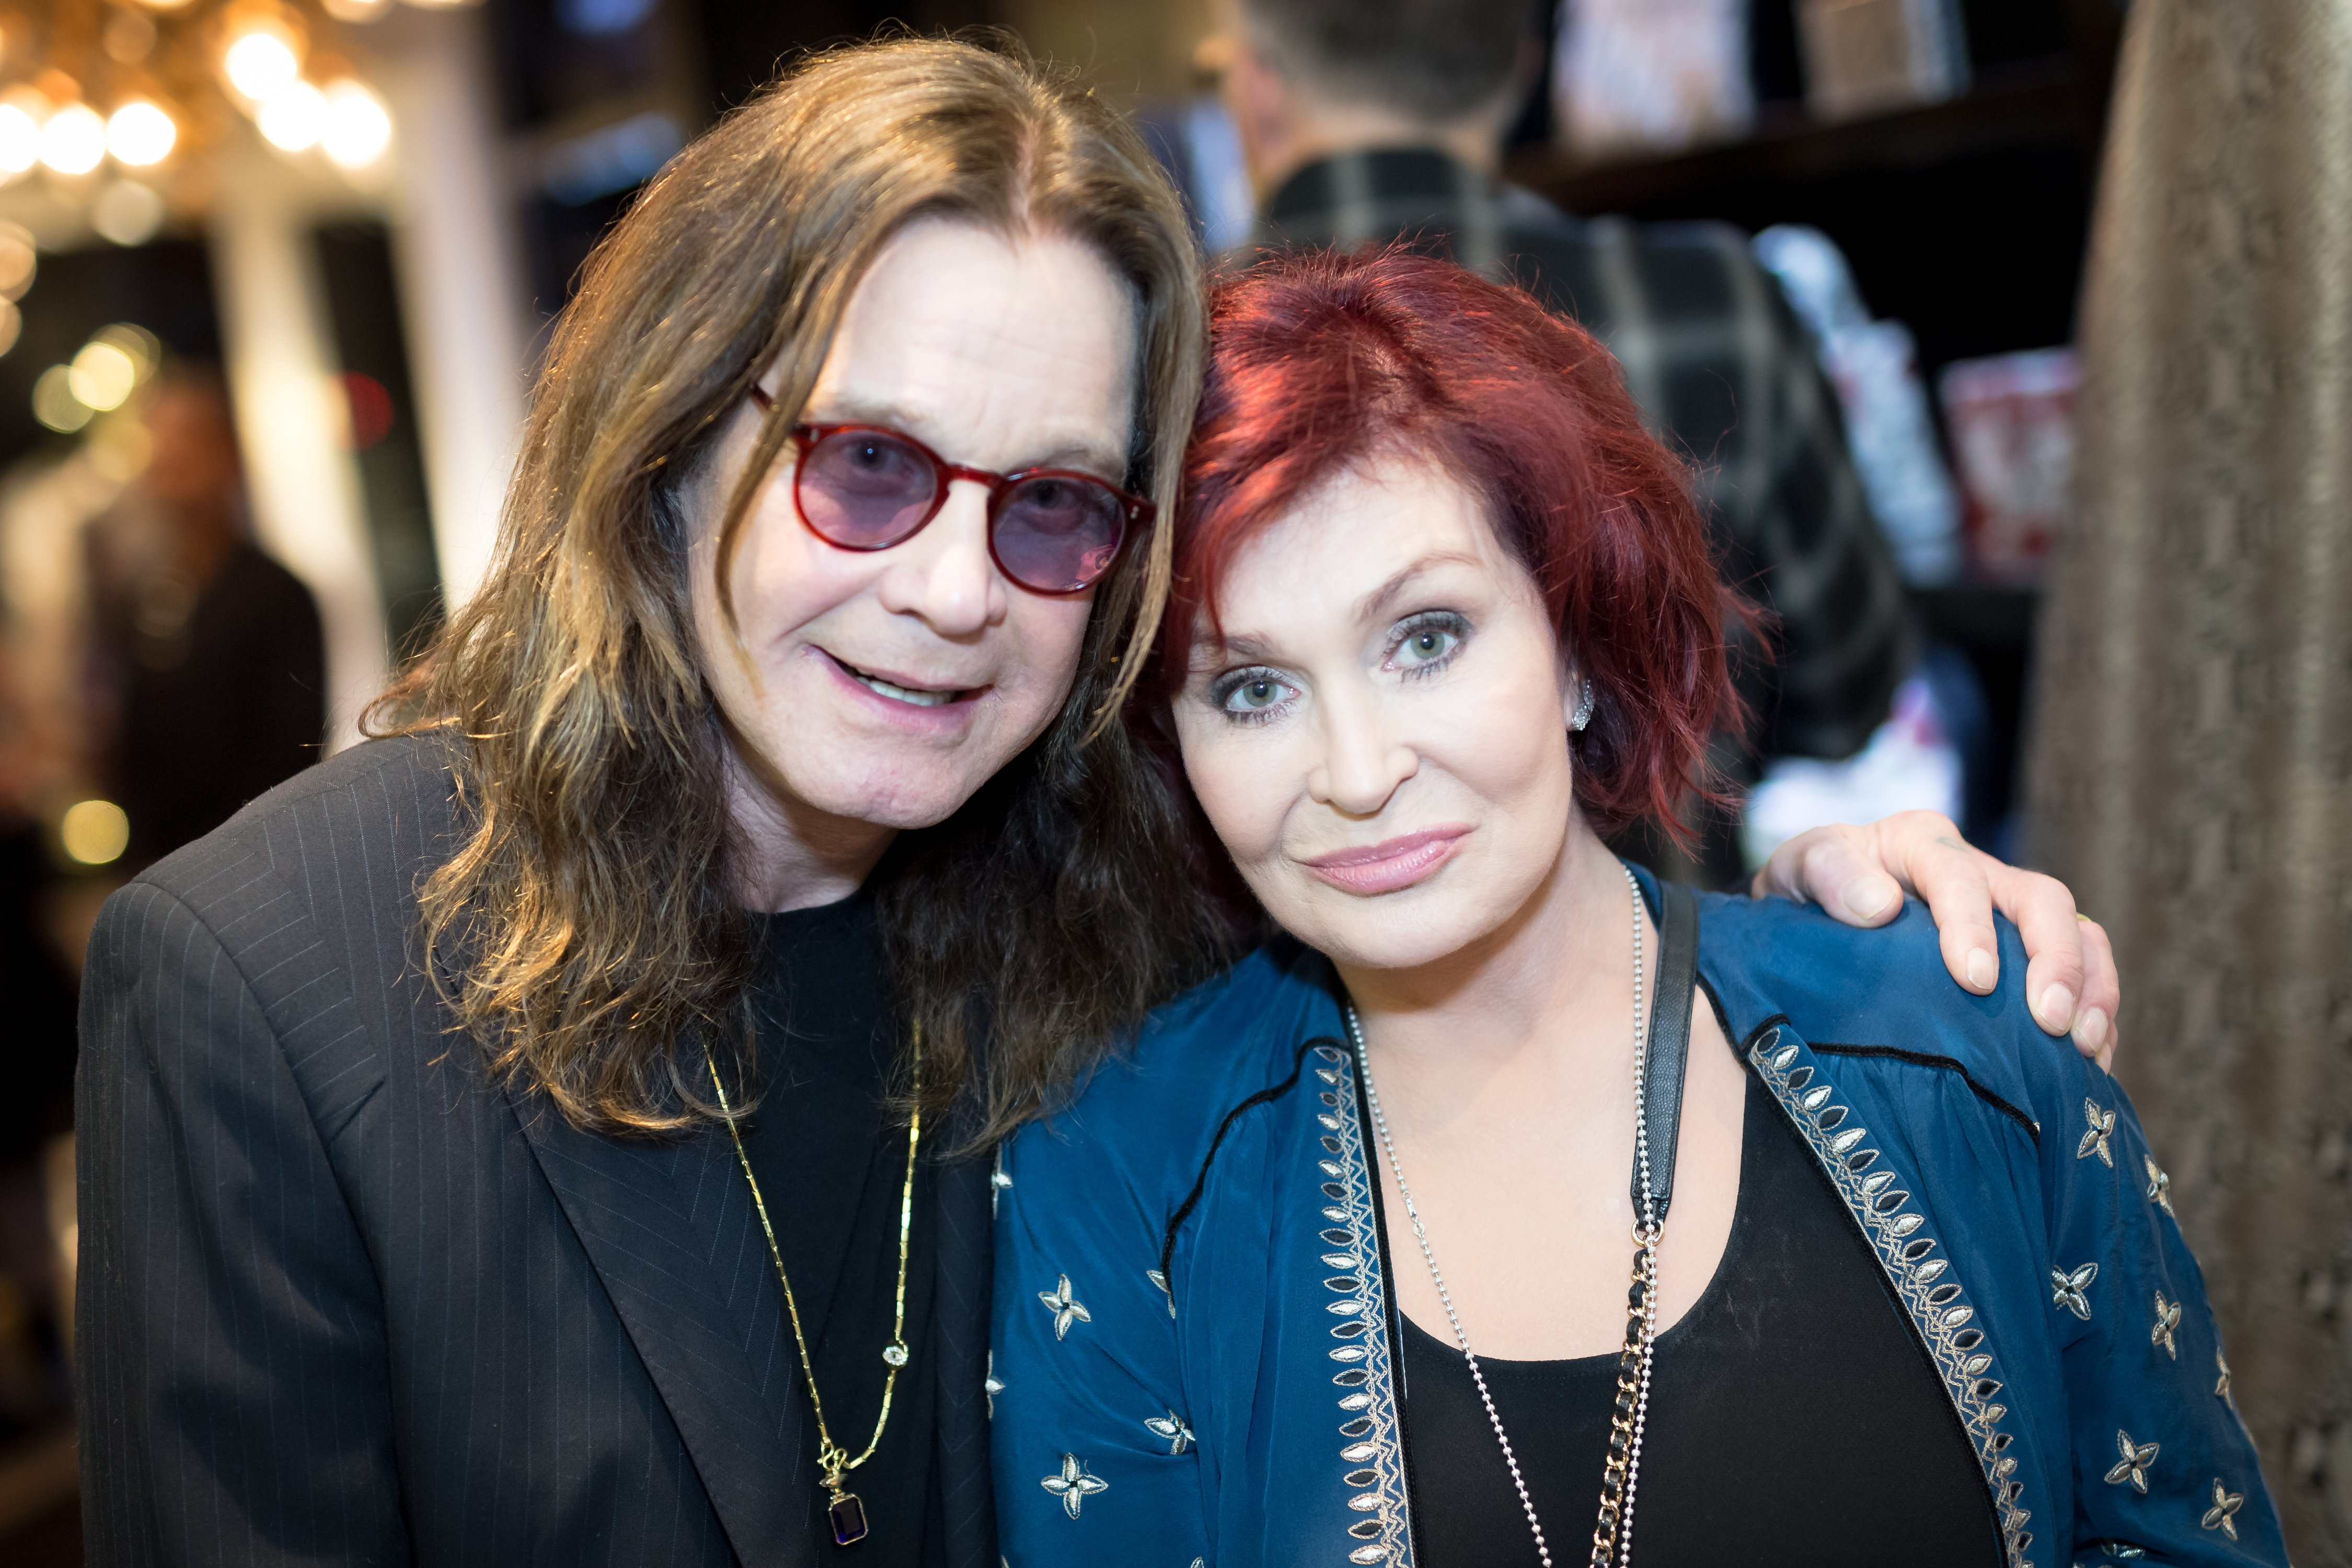 Ozzy Osbourne and Sharon Osbourne attend the Billy Morrison - Aude Somnia Solo Exhibition at Elisabeth Weinstock on September 28, 2017 in Los Angeles, California | Photo: Getty Images